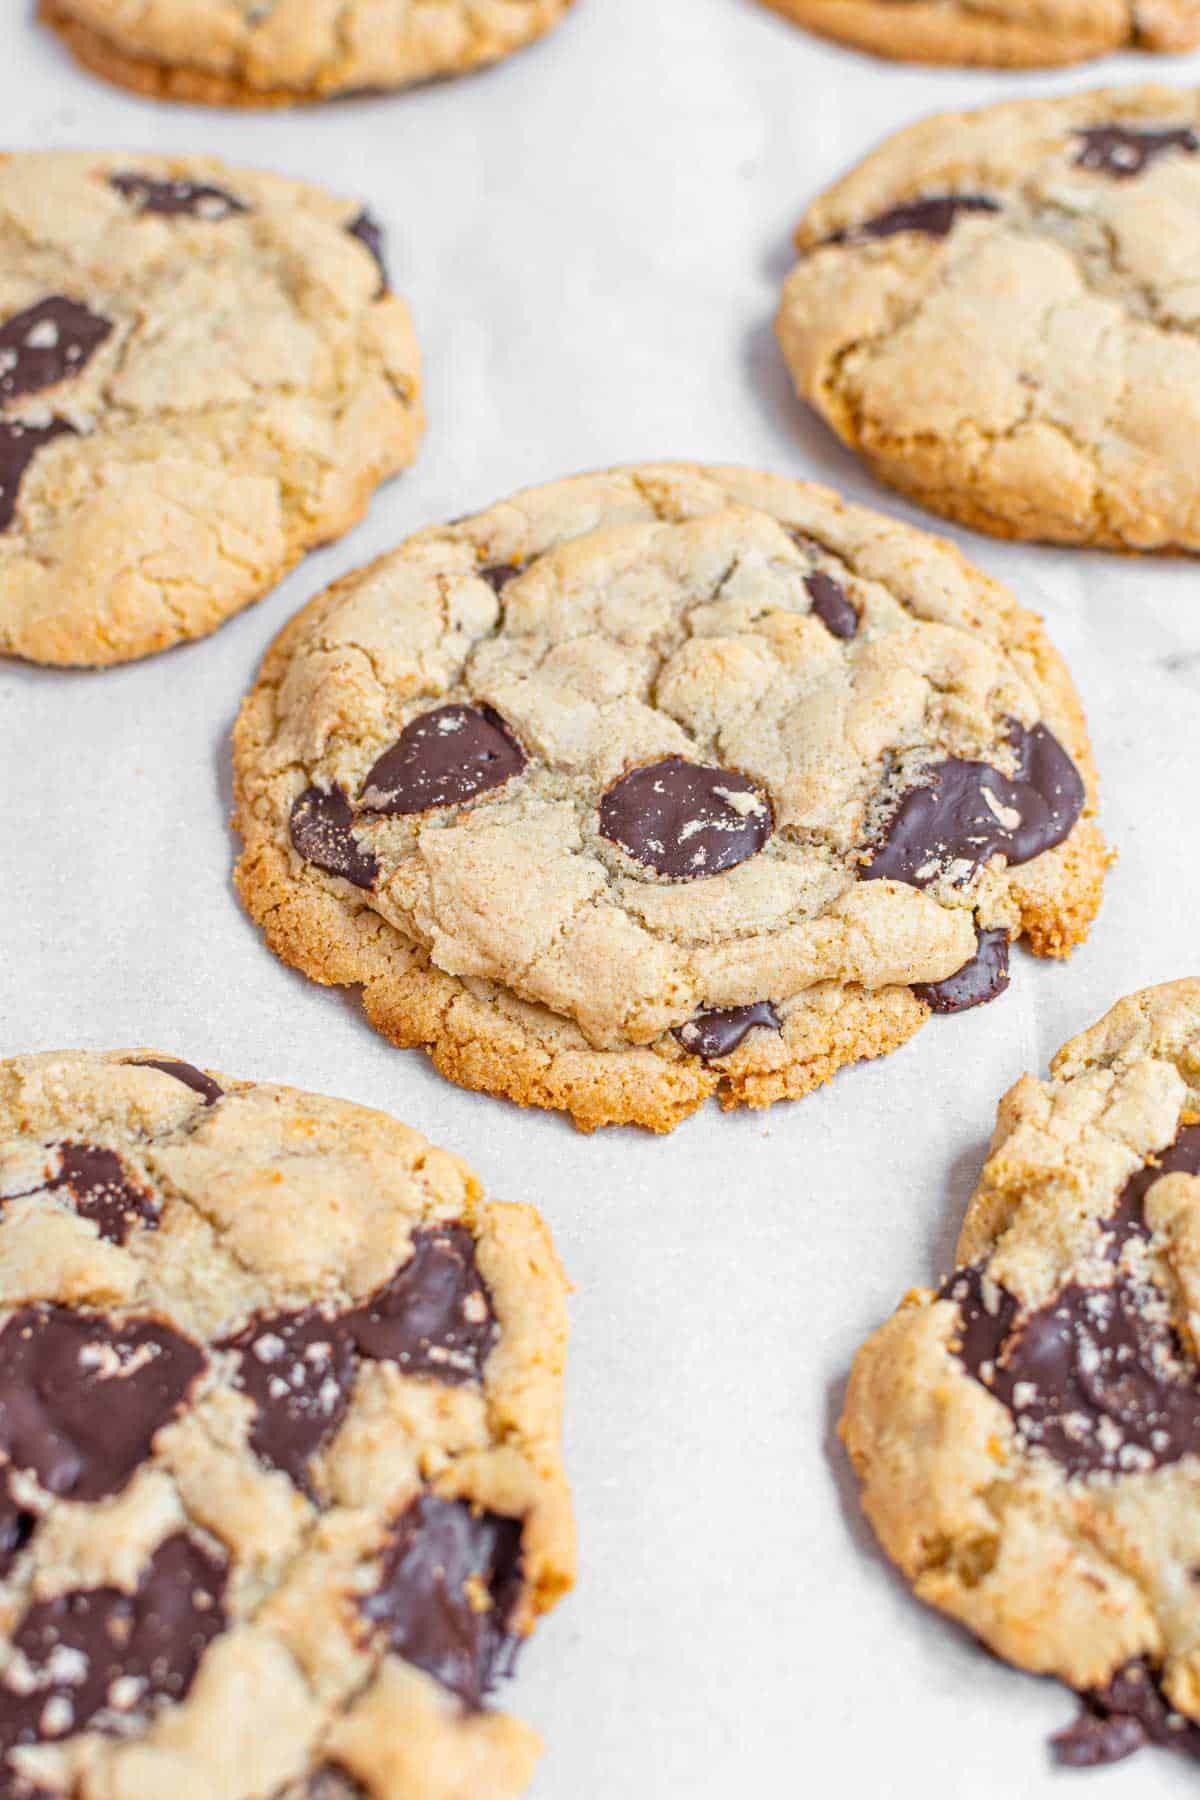 A Close-Up Shot of Gluten Free Chocolate Chip Cookies on a Parchment-Lined Baking Sheet